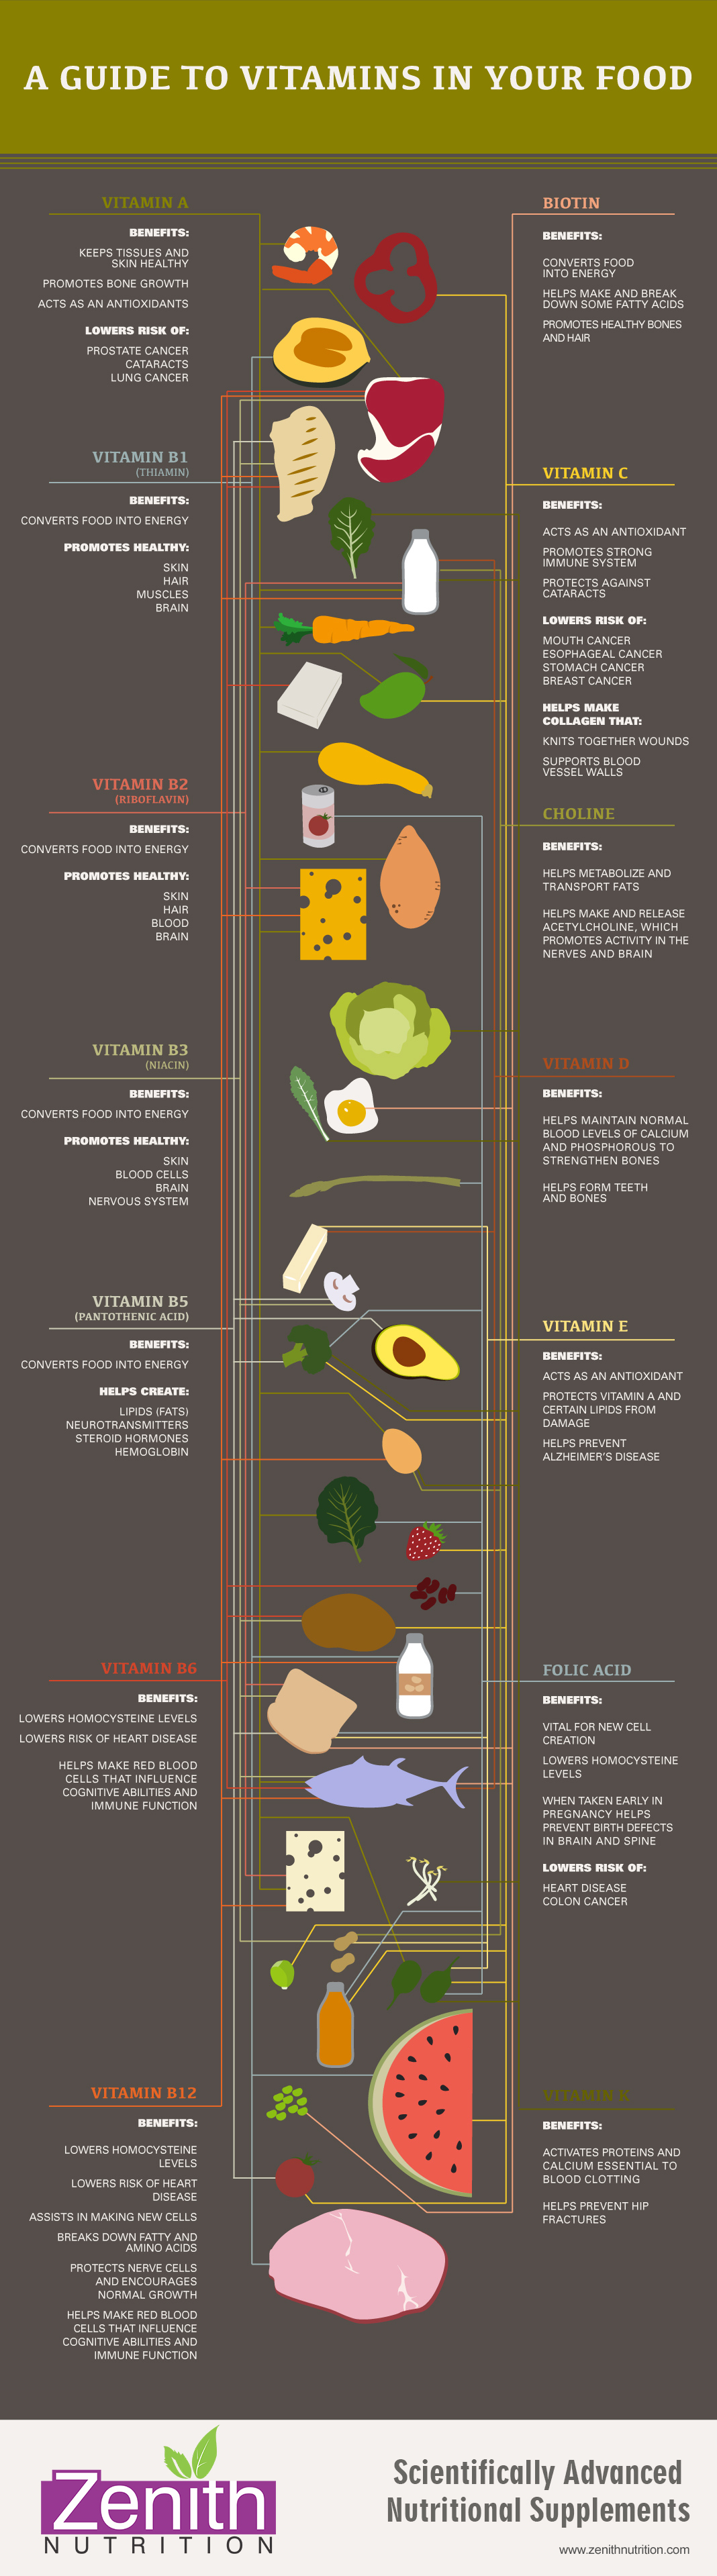 A guide to vitamins in your food vitamin a biotin